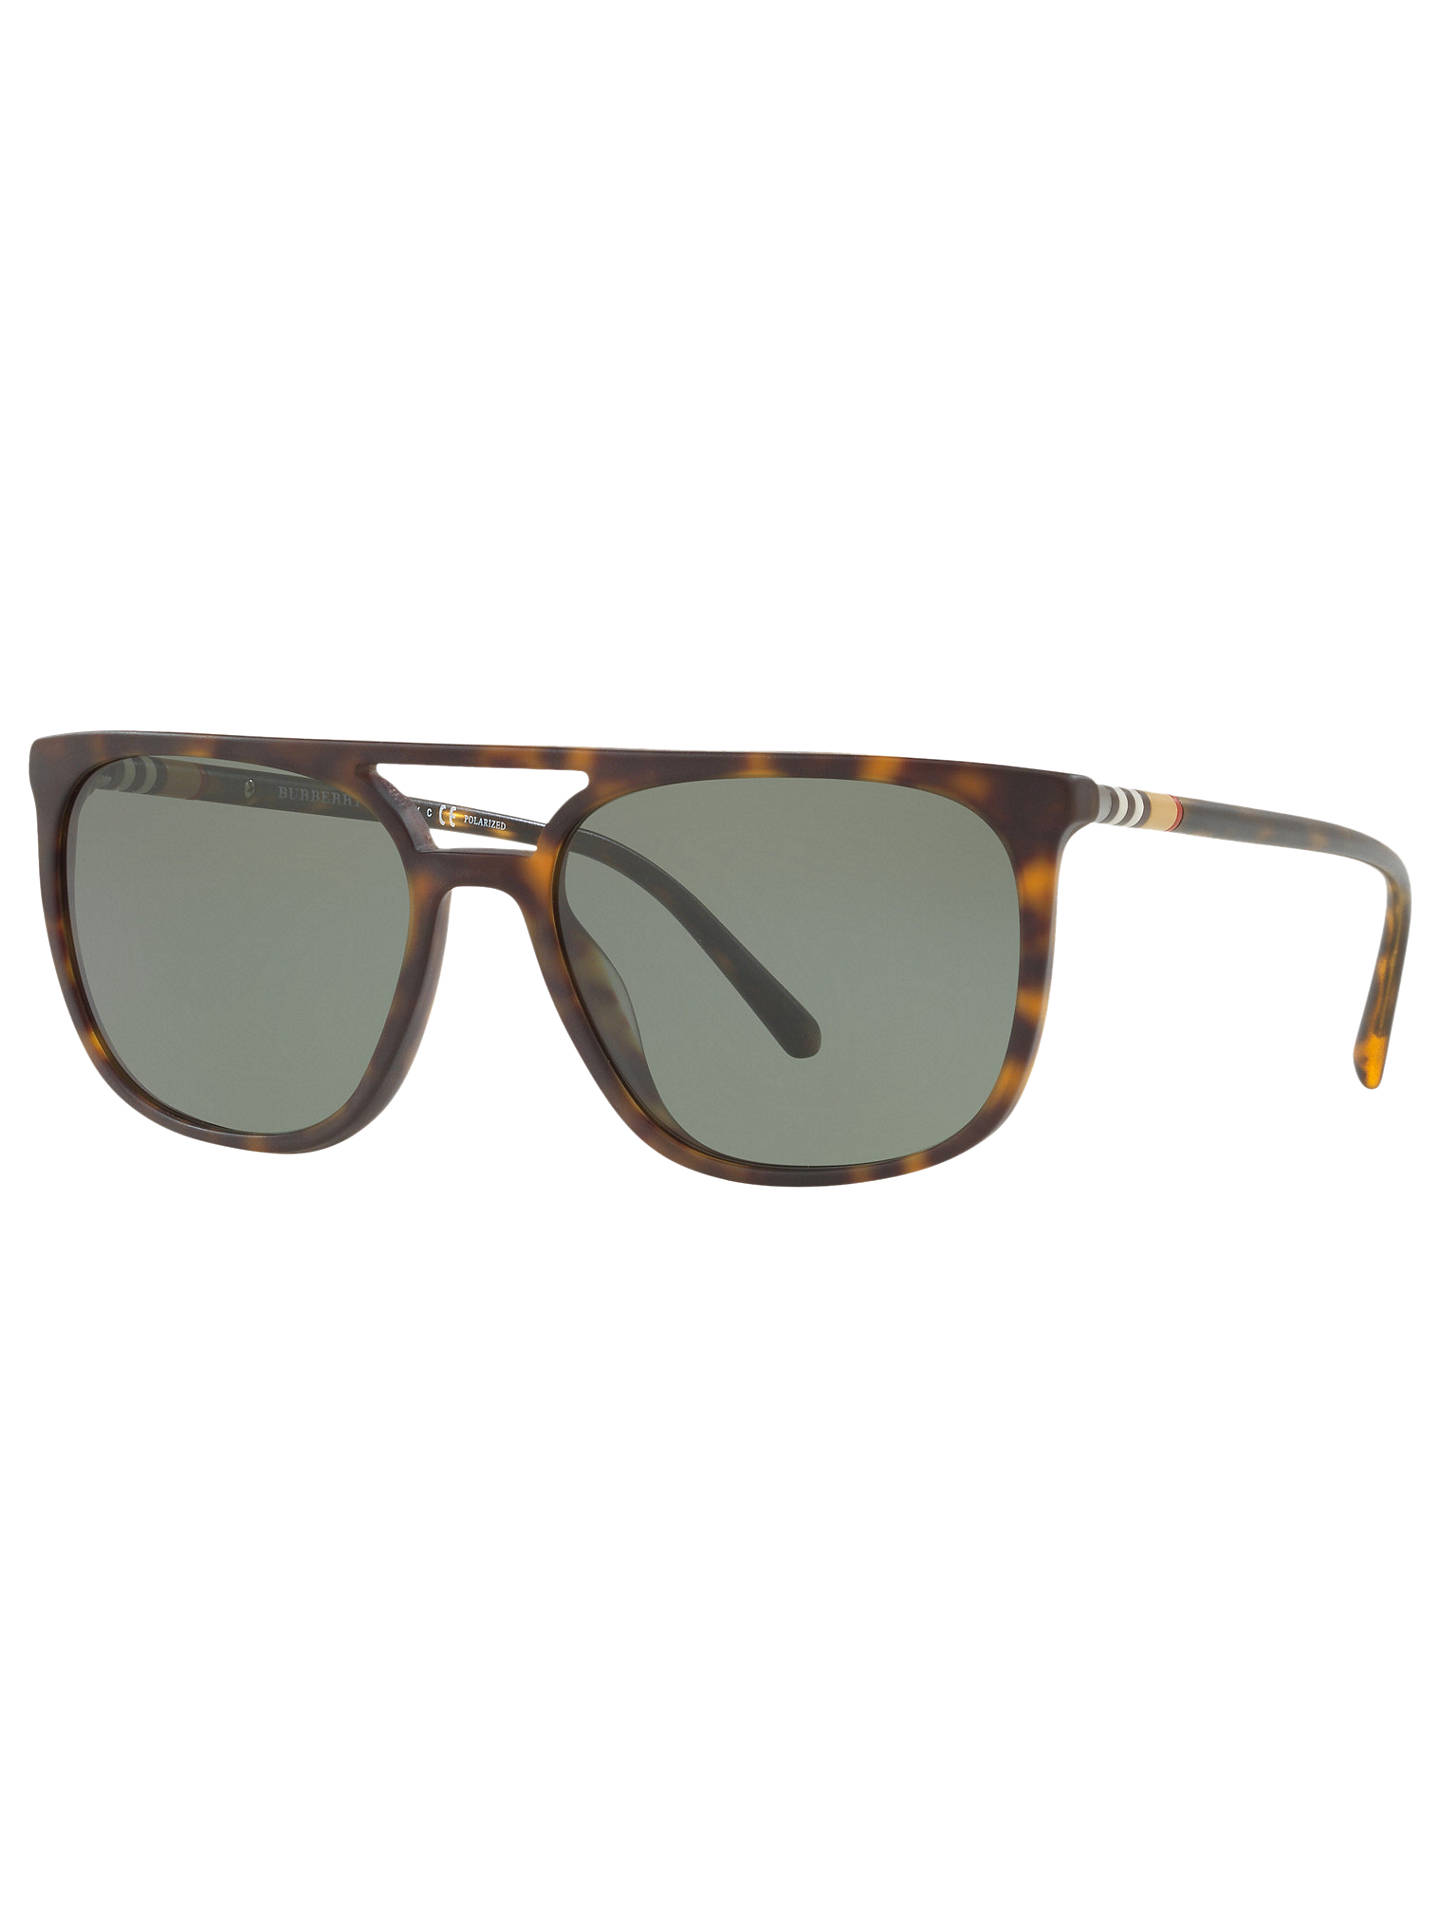 528c1f3559 BuyBurberry BE4257 Mens s Square Sunglasses